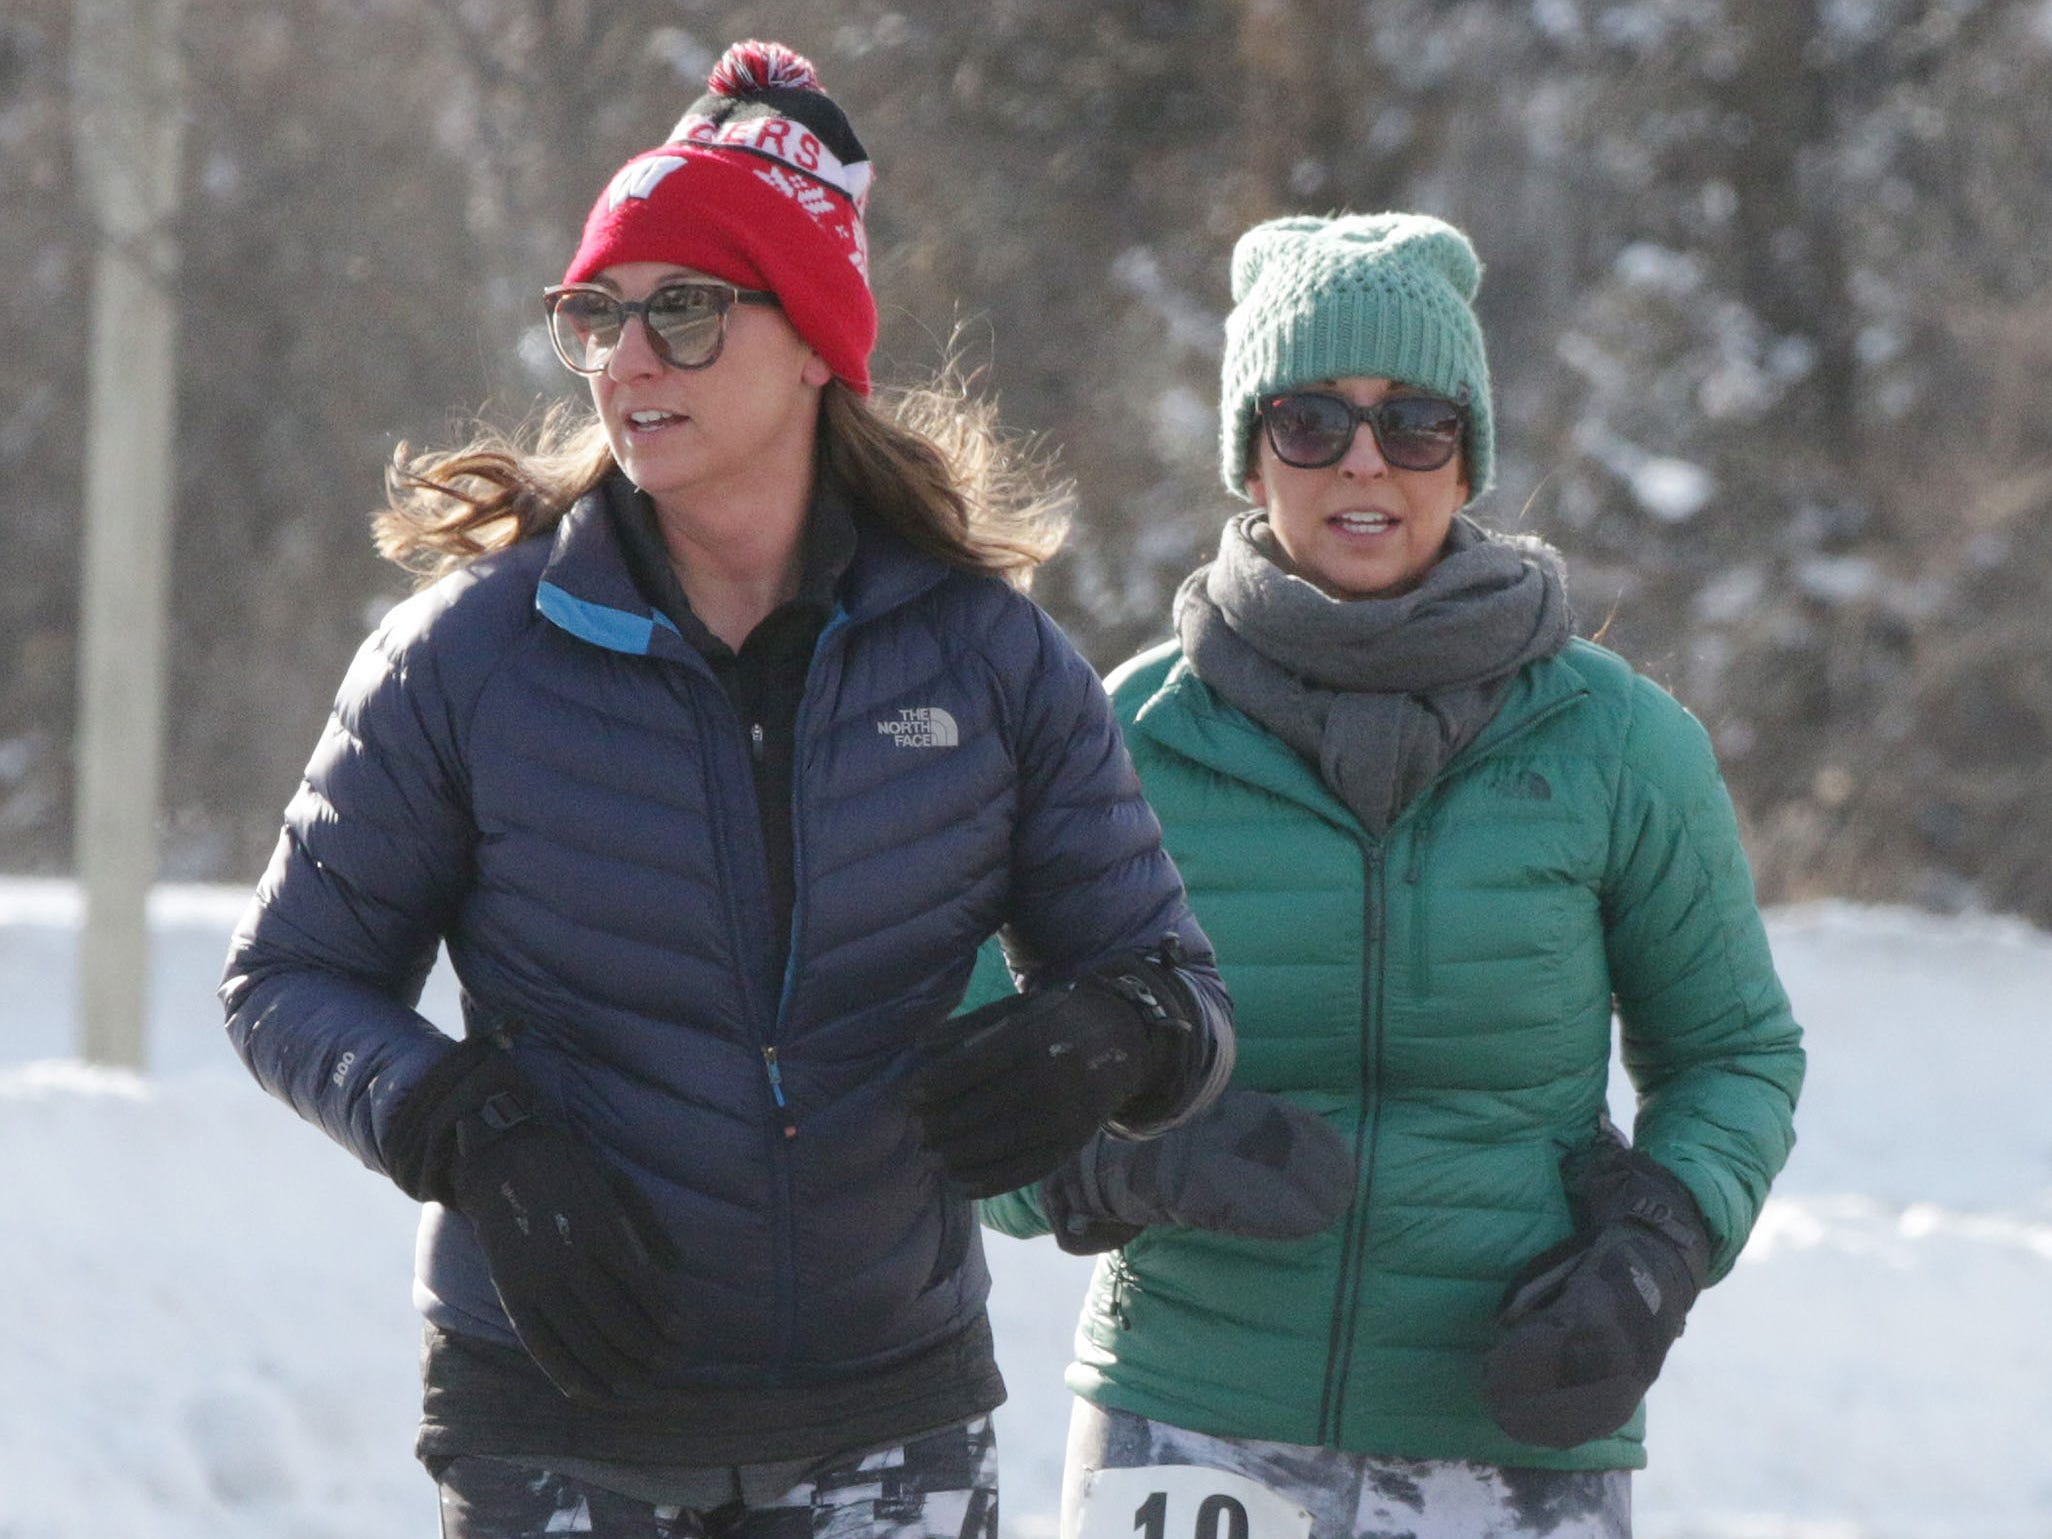 Sarah Dezwarte of Elkhart Lake (131, left) and Tonie Becker (19) run the 2-miles Schneelauf Run, Saturday, January 26, 2019, in Elkhart Lake, Wis. The event is part of Schnee Days in Elkhart Lake. Dezwarte's time was 23:33 and Becker's time was 23:35